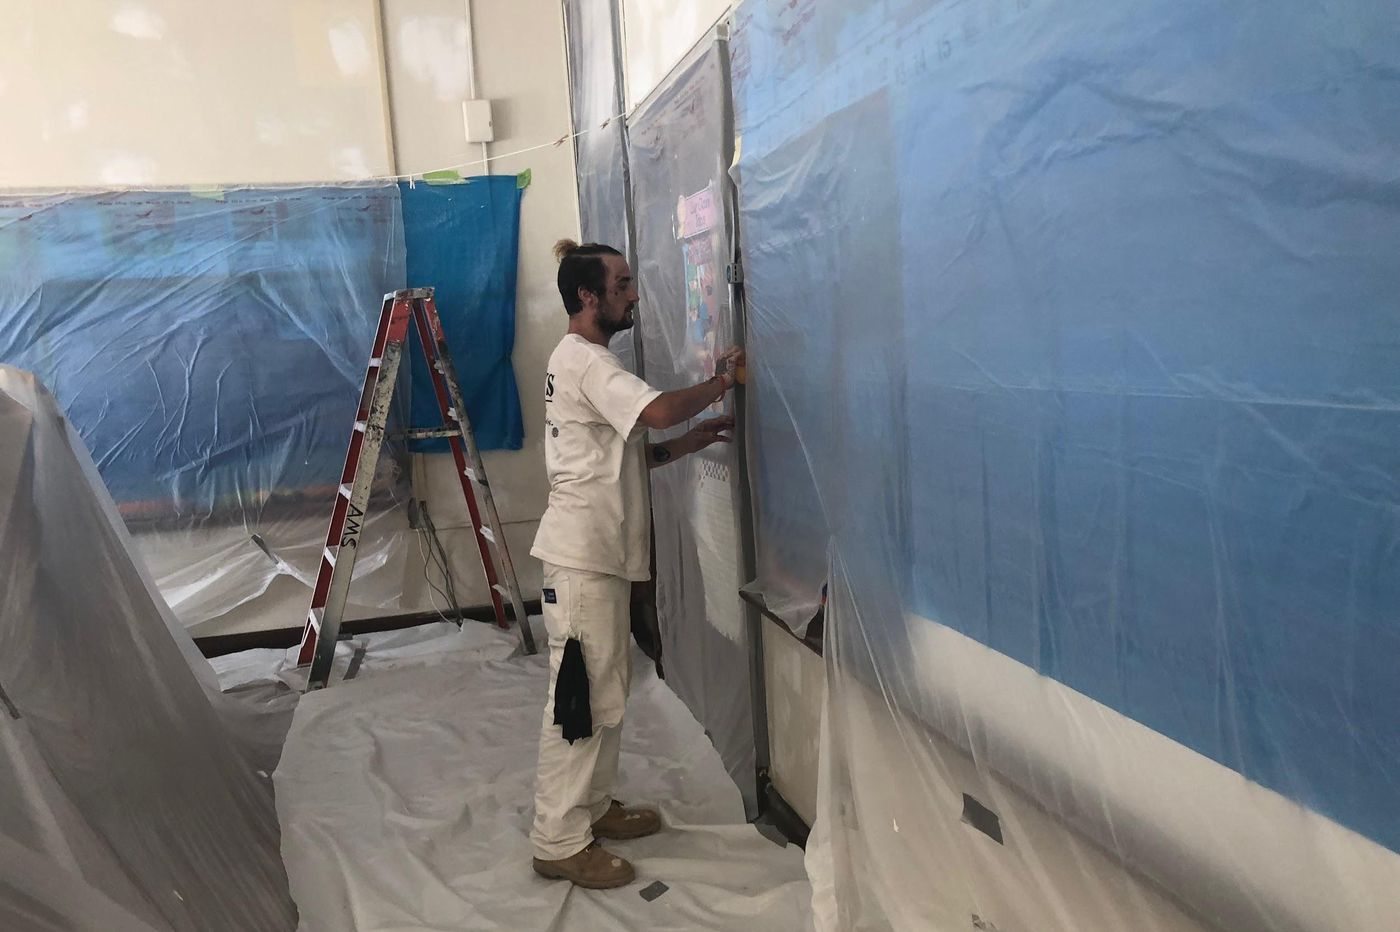 Philadelphia school kids will get added protections from lead paint perils